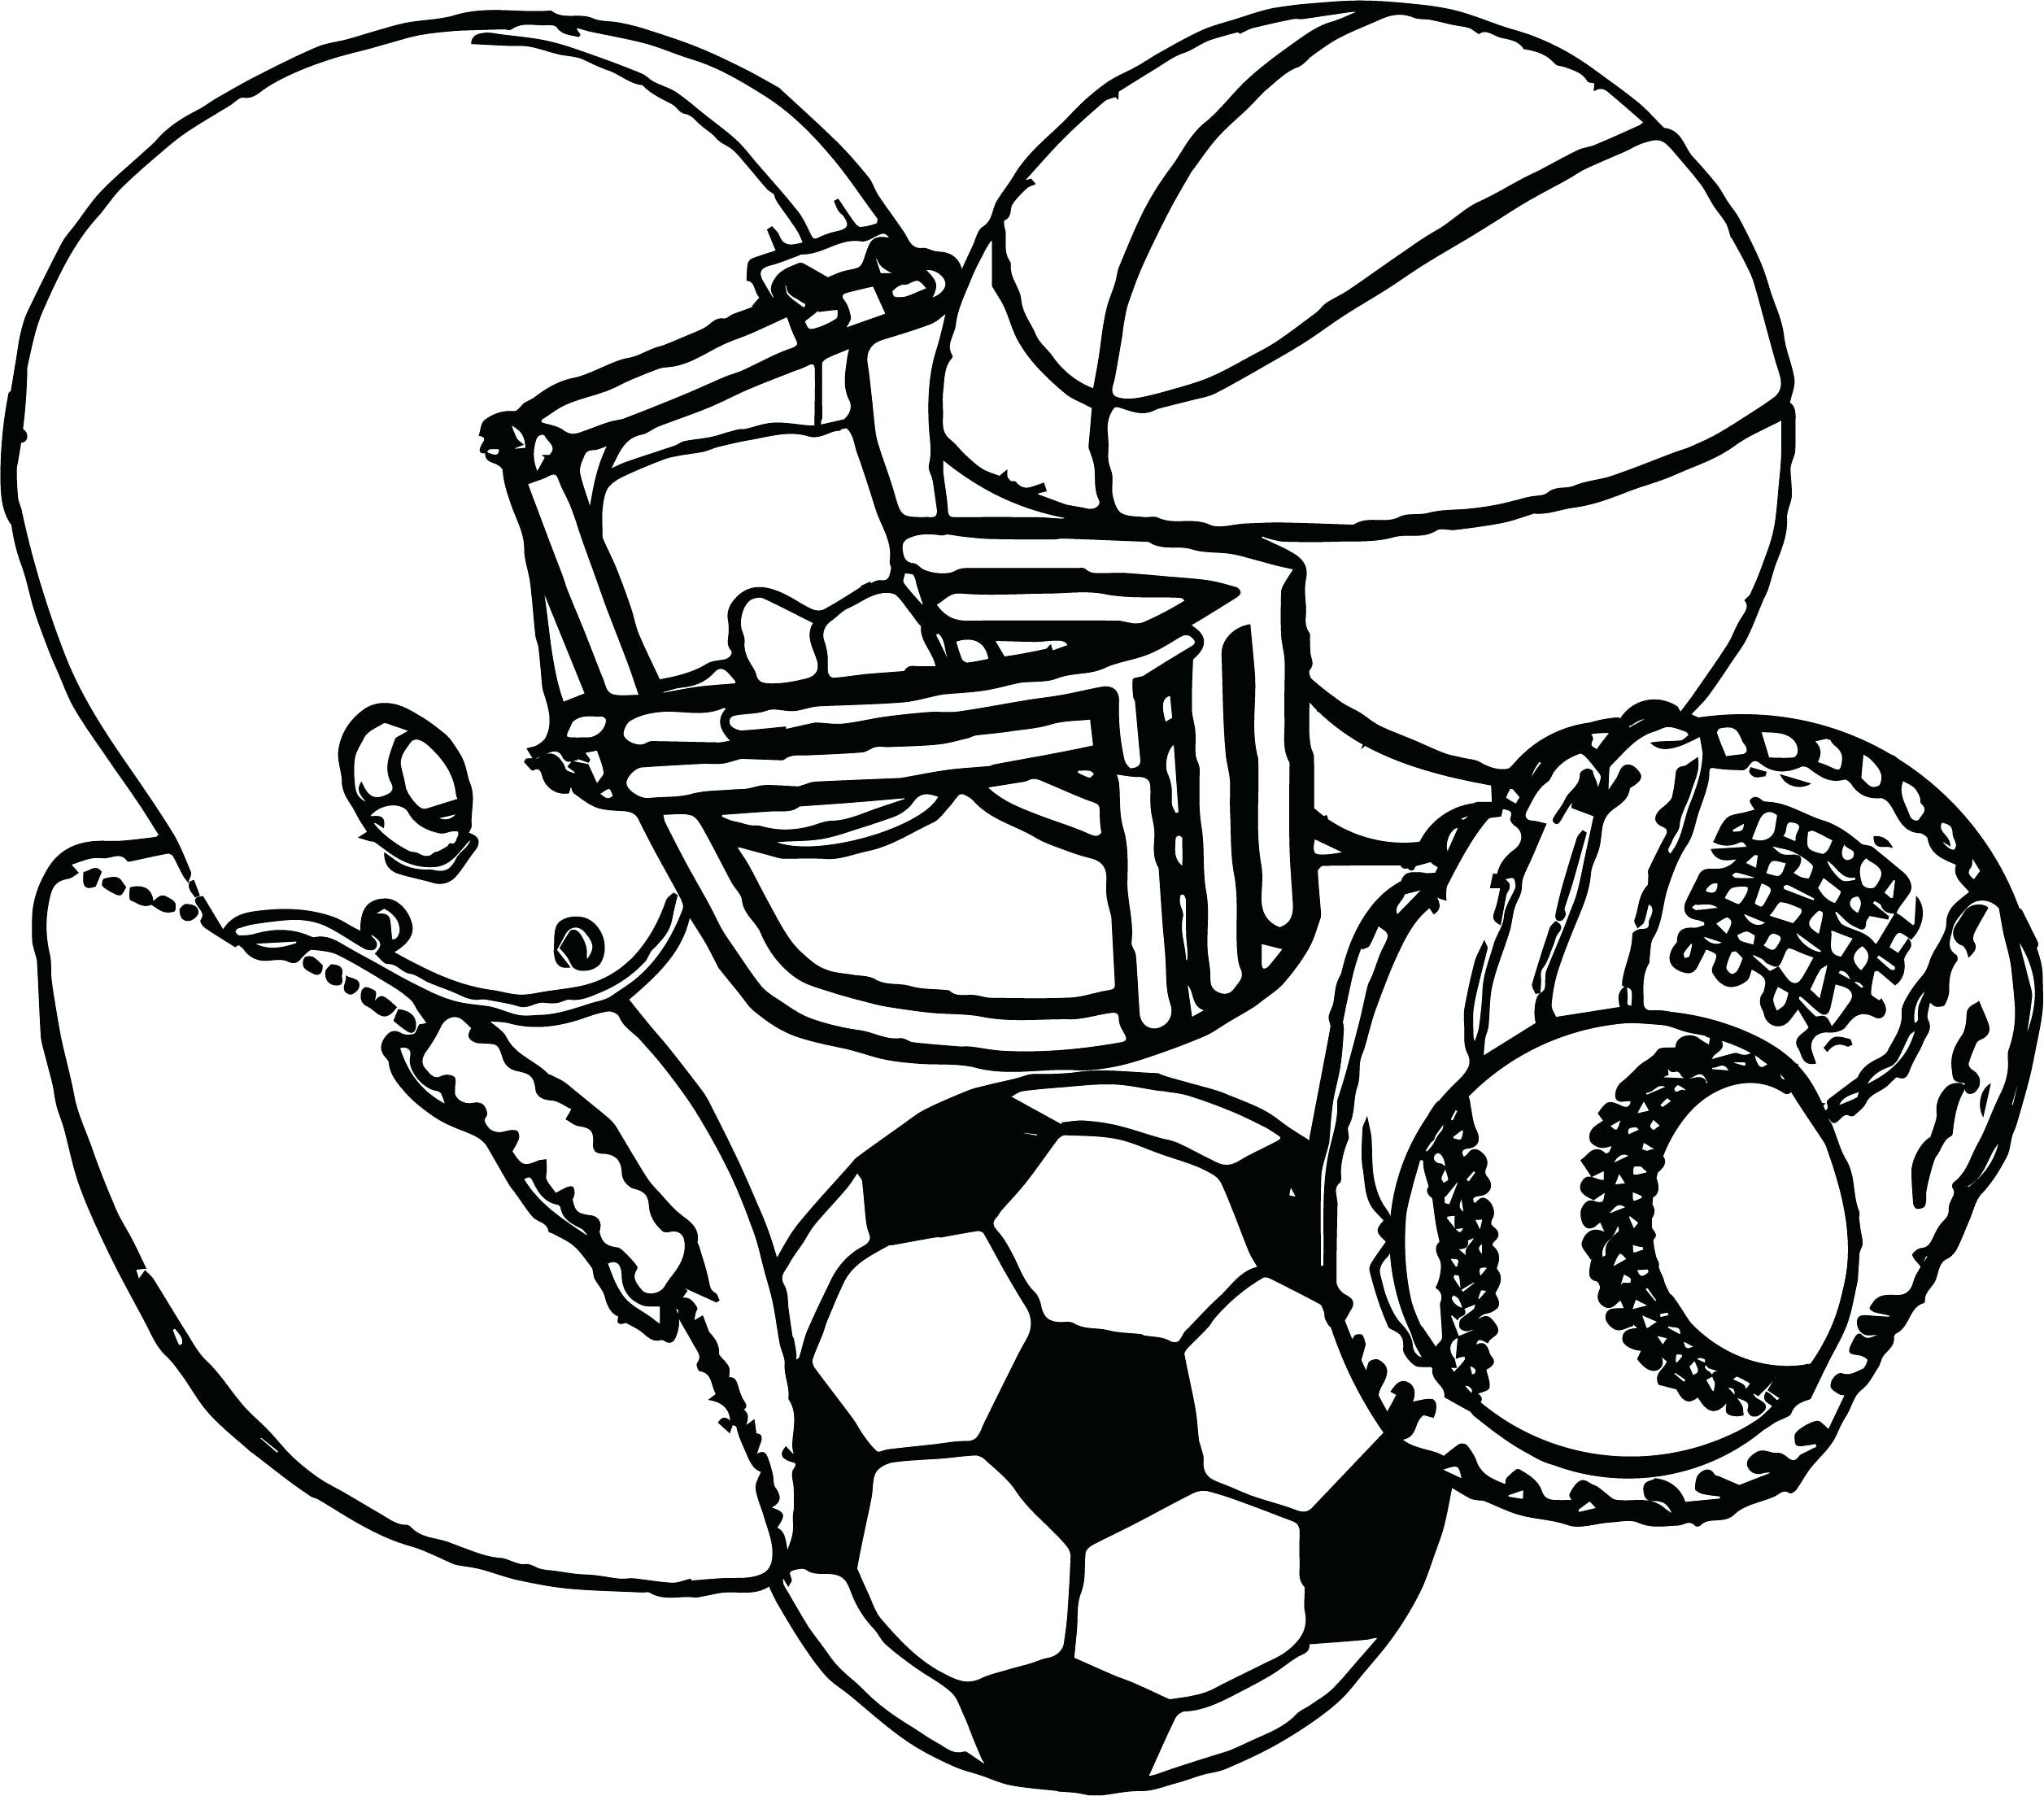 Sports Equipment Drawing At Getdrawings